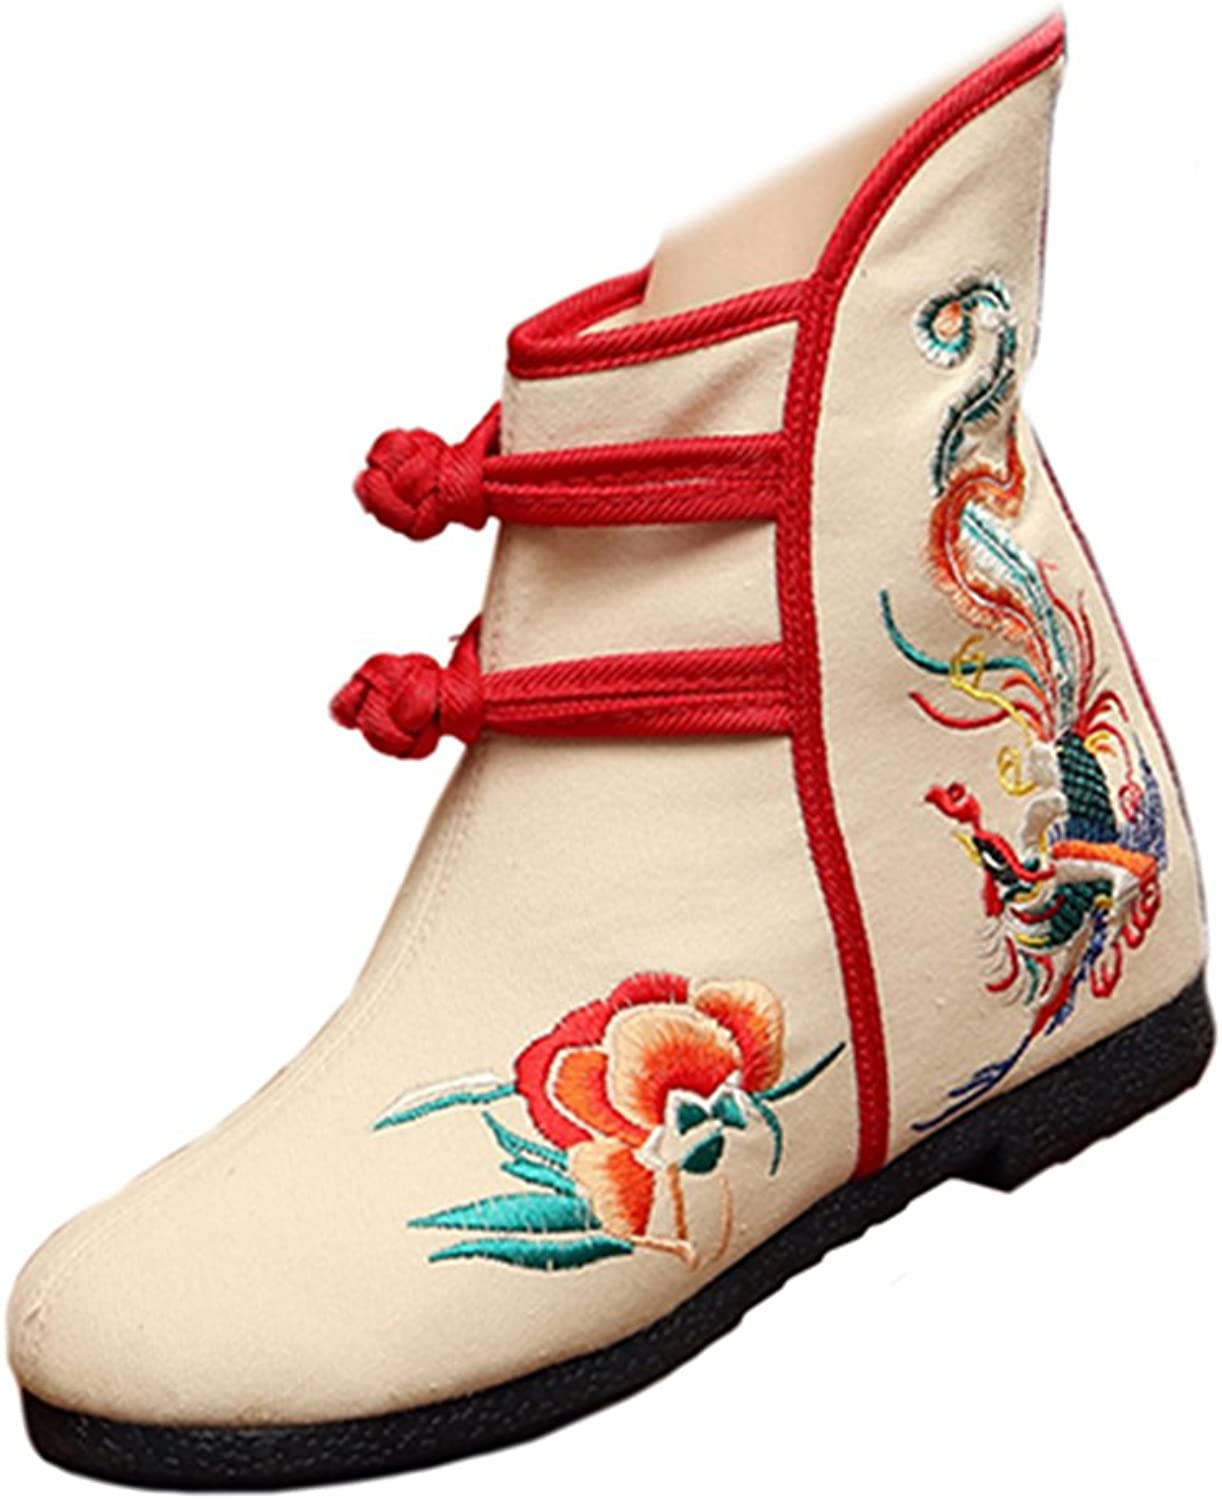 Shenghuajie Vintage Beijing Cloth shoes Embroidered Boots 12-01 Beige